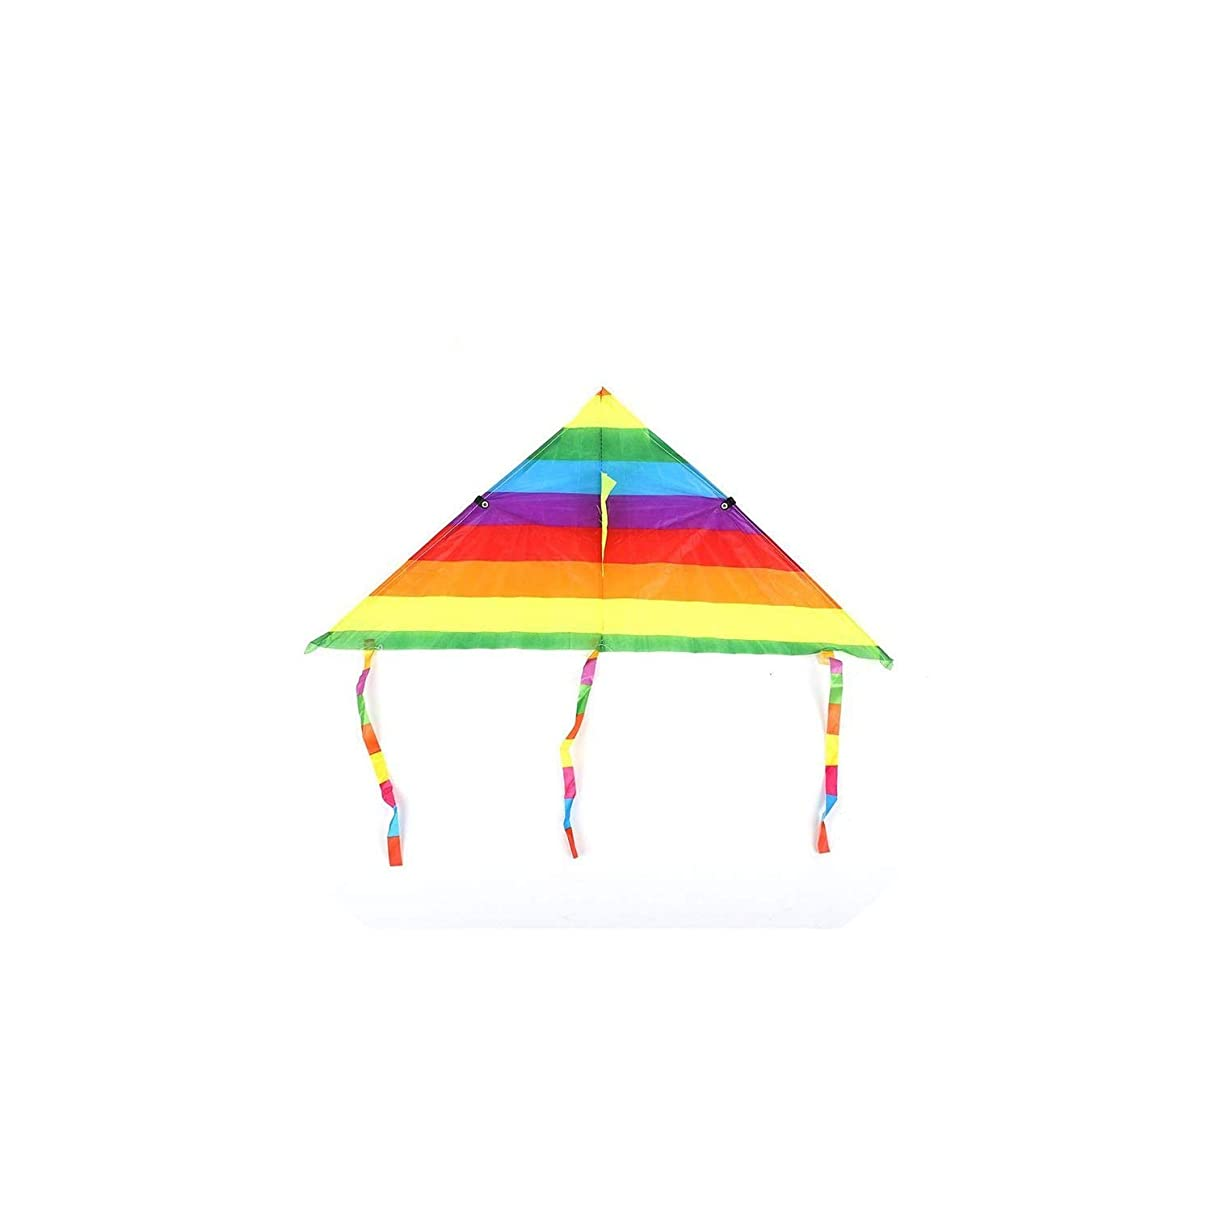 Liliy-luckly Colorful Rainbow Kite Long Tail Polyester Outdoor Kites Flying Toys for Kids Stunt Surf Kite